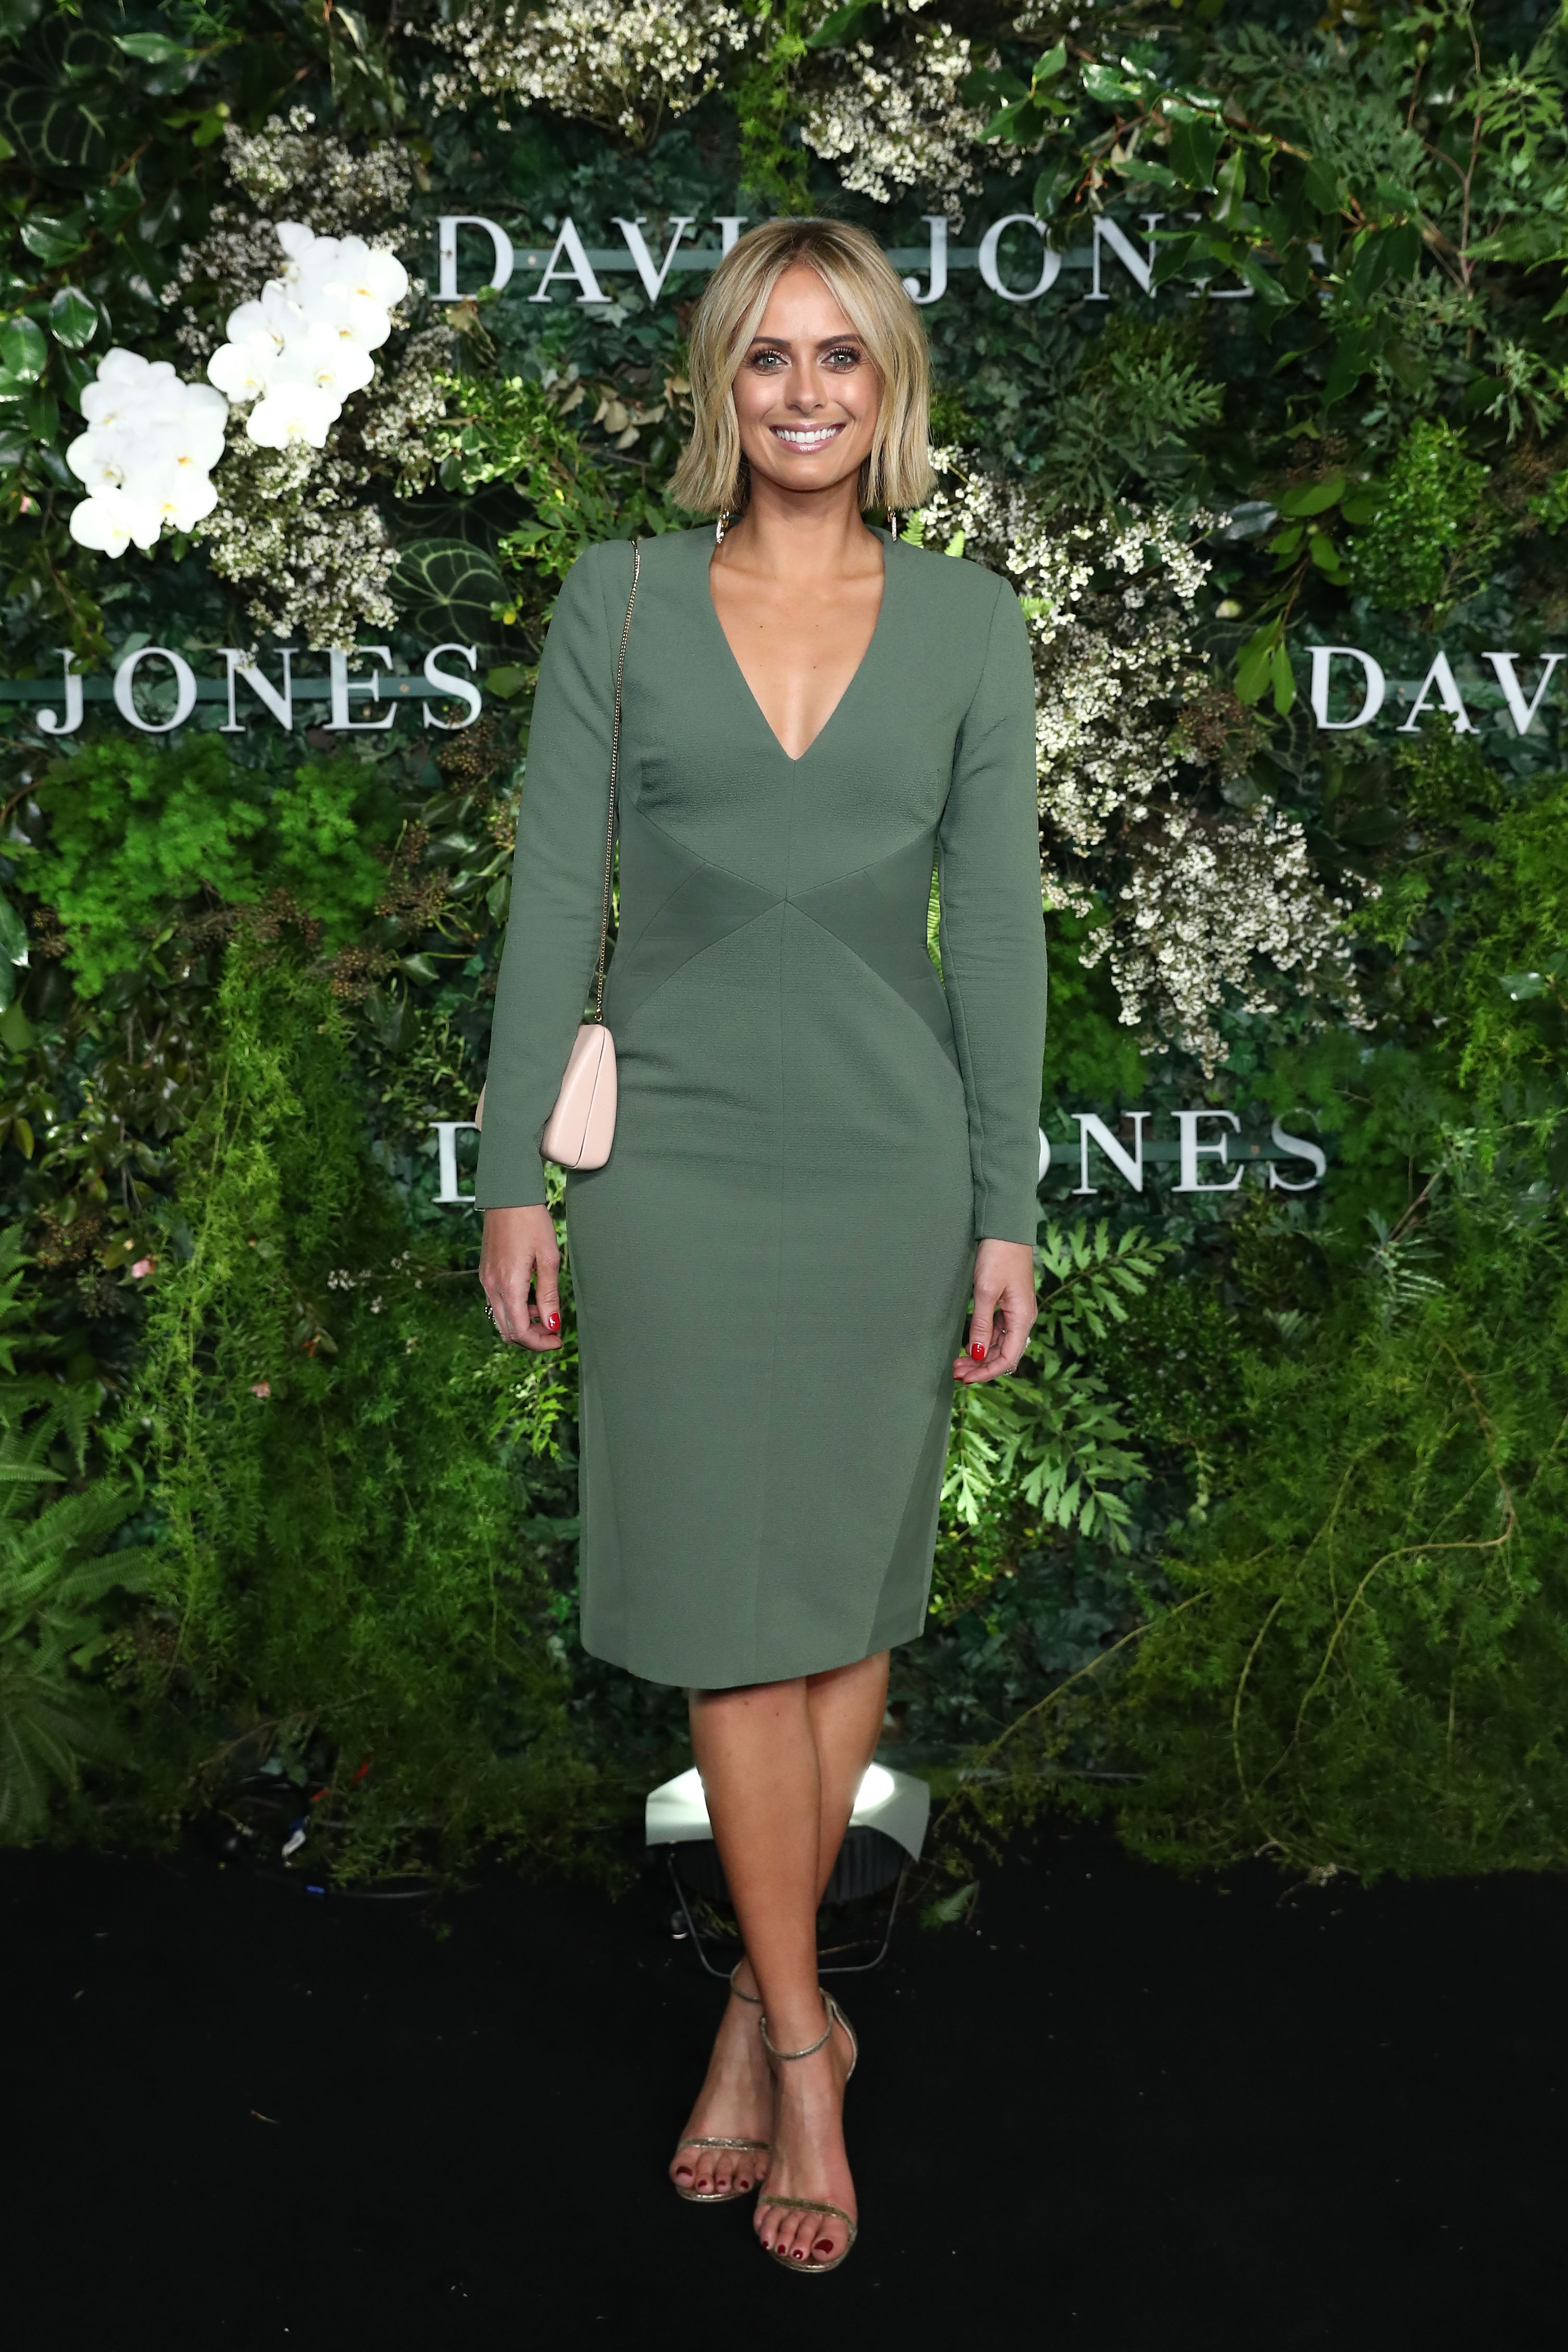 SYDNEY, AUSTRALIA - AUGUST 08:  Sylvia Jeffreys attends the David Jones Spring Summer 18 Collections Launch at Fox Studios on August 8, 2018 in Sydney, Australia.  (Photo by Mark Metcalfe/Getty Images for David Jones) *** Local Caption *** Sylvia Jeffreys